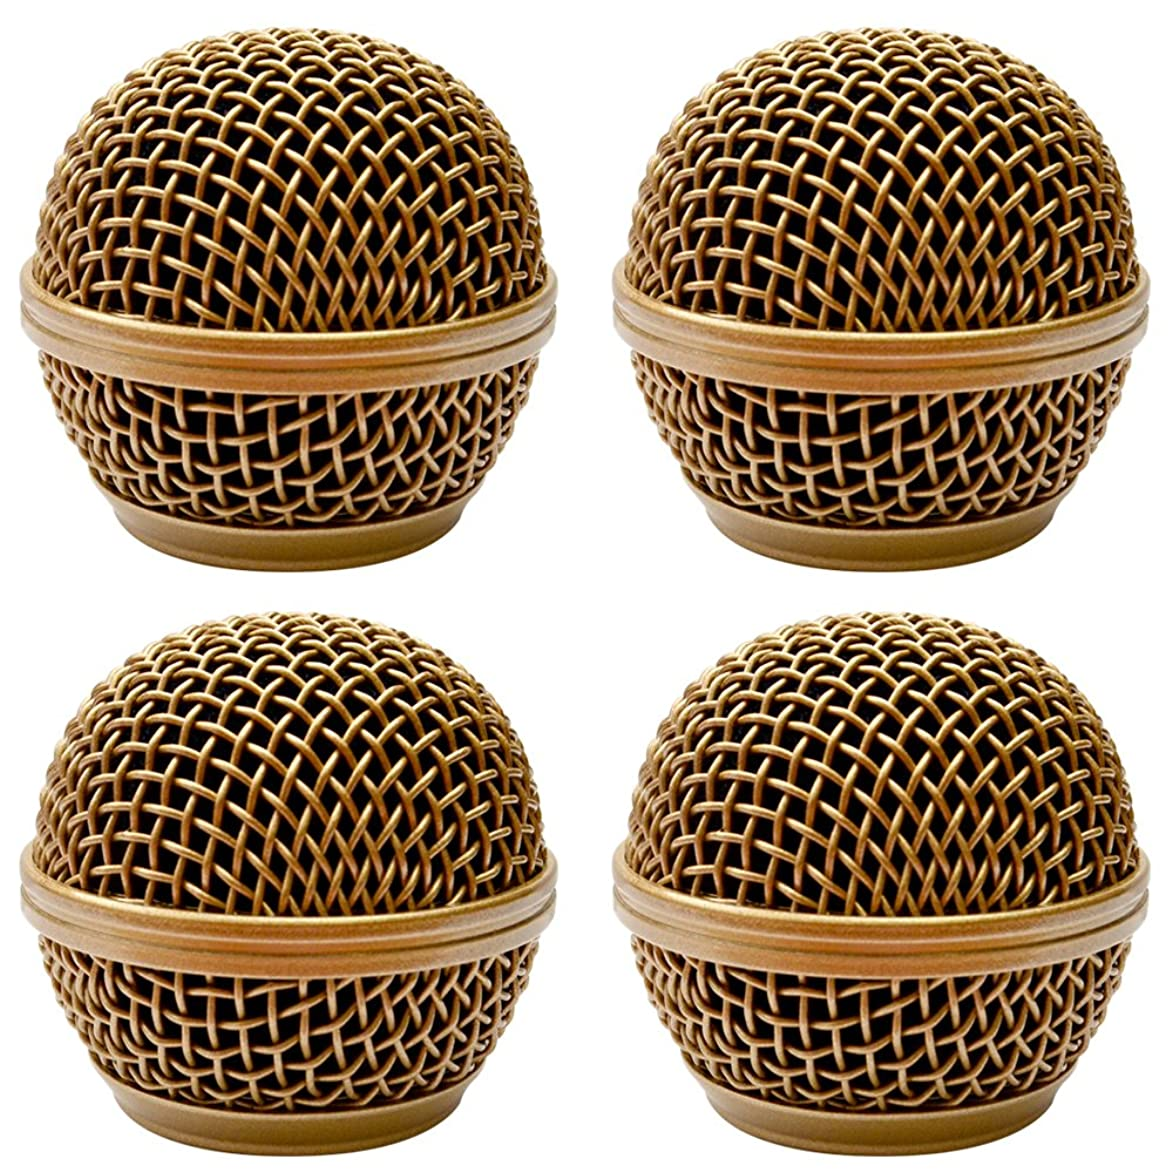 Seismic Audio - SA-M30Grille-Gold-4Pack - 4 Pack of Replacement Gold Steel Mesh Microphone Grill Heads - Compatible with SA-M30, Shure SM58, Shure SV100 and Similar